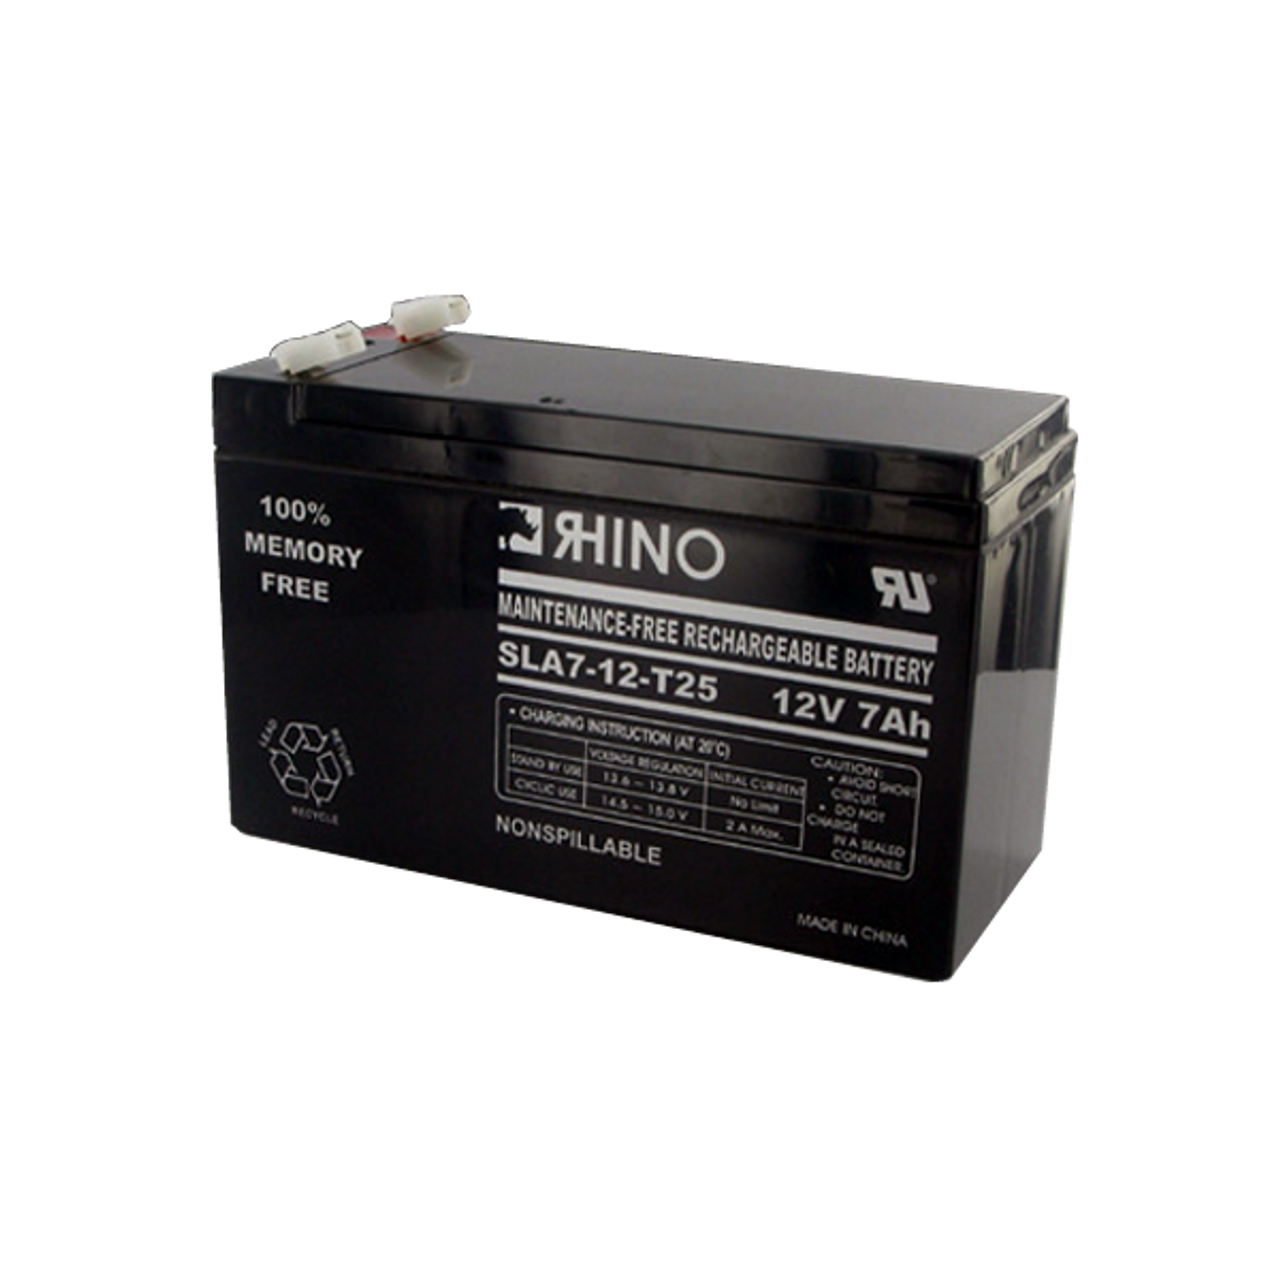 Rhino SLA7-12 12V 7Ah Sealed Lead Acid Battery This is an AJC Brand Replacement